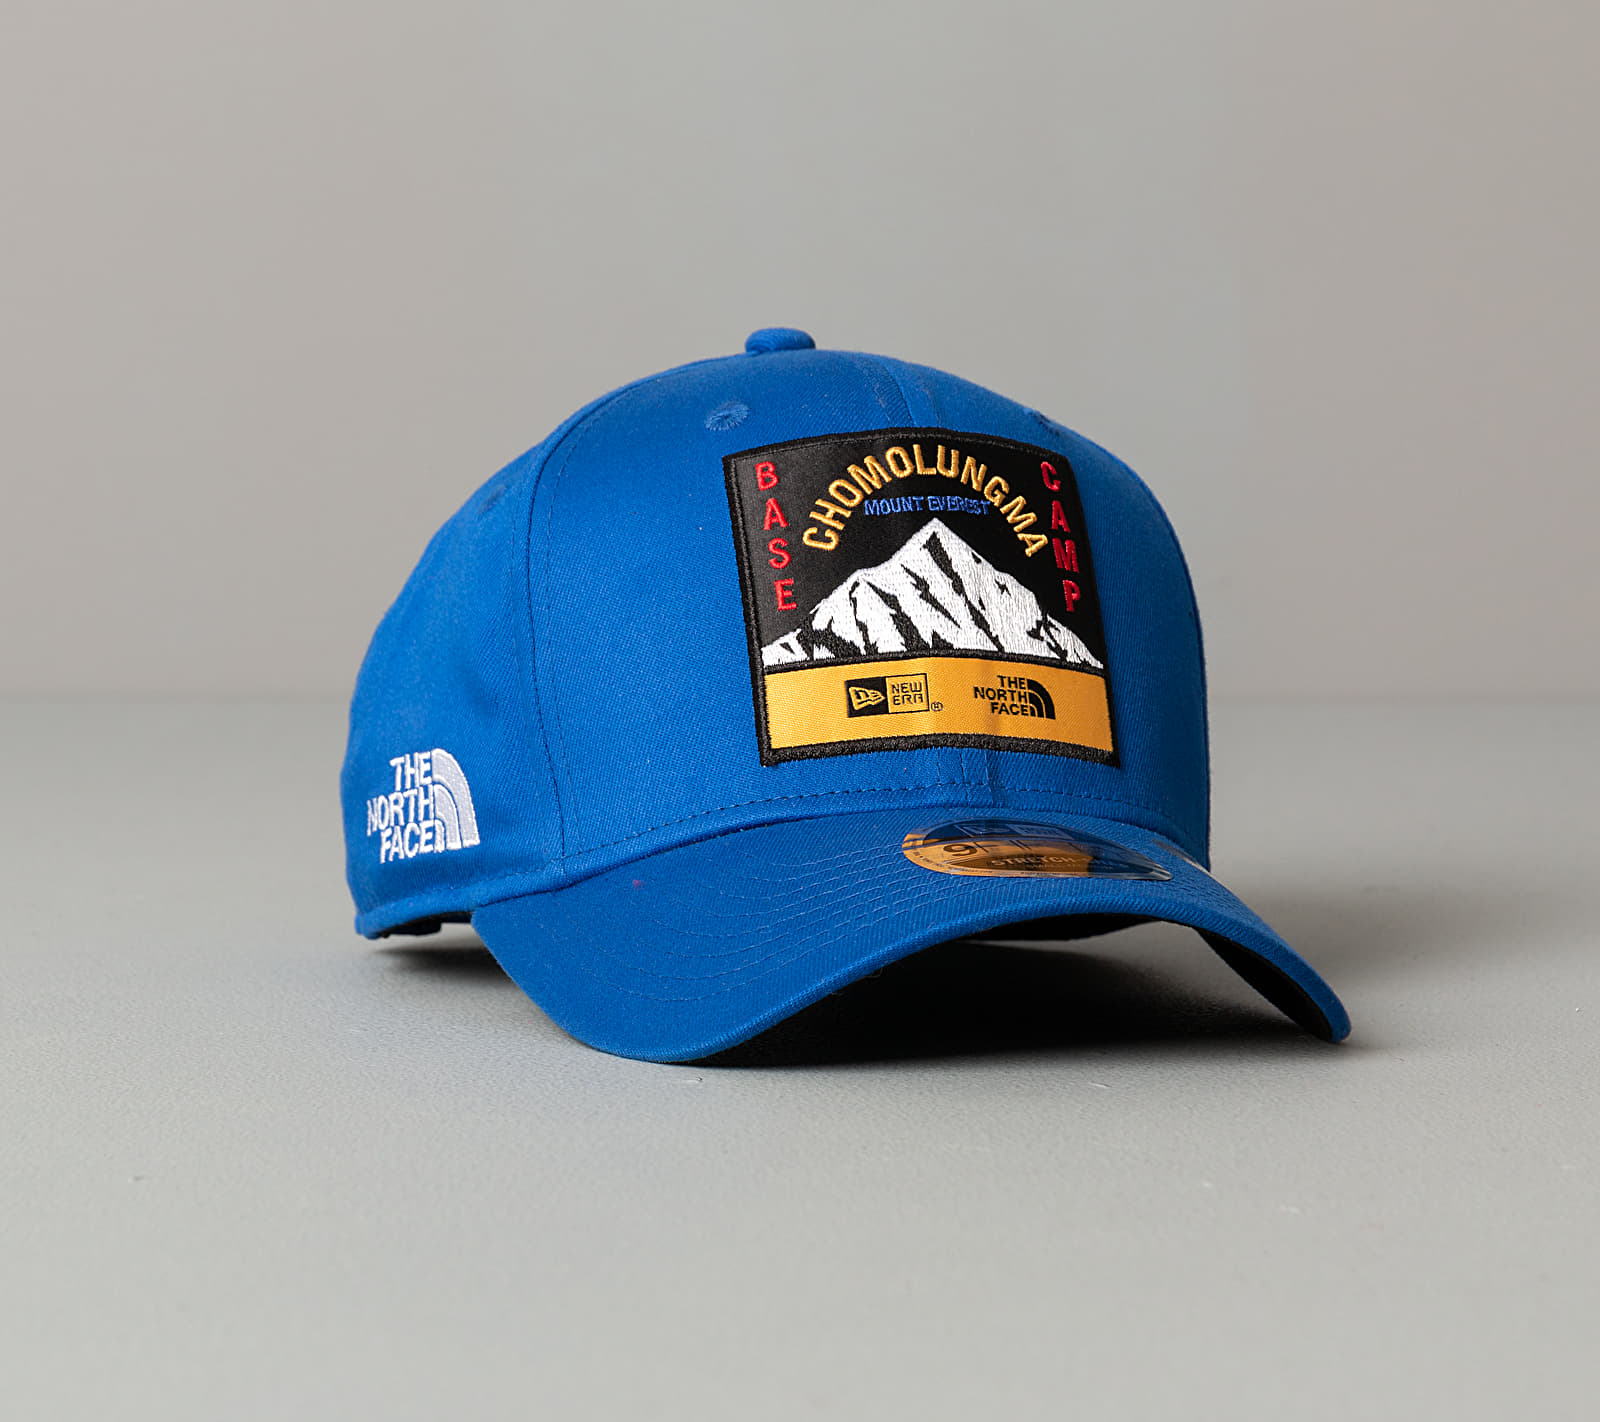 New Era x The North Face 9Fifty Stretch Snapback Blue